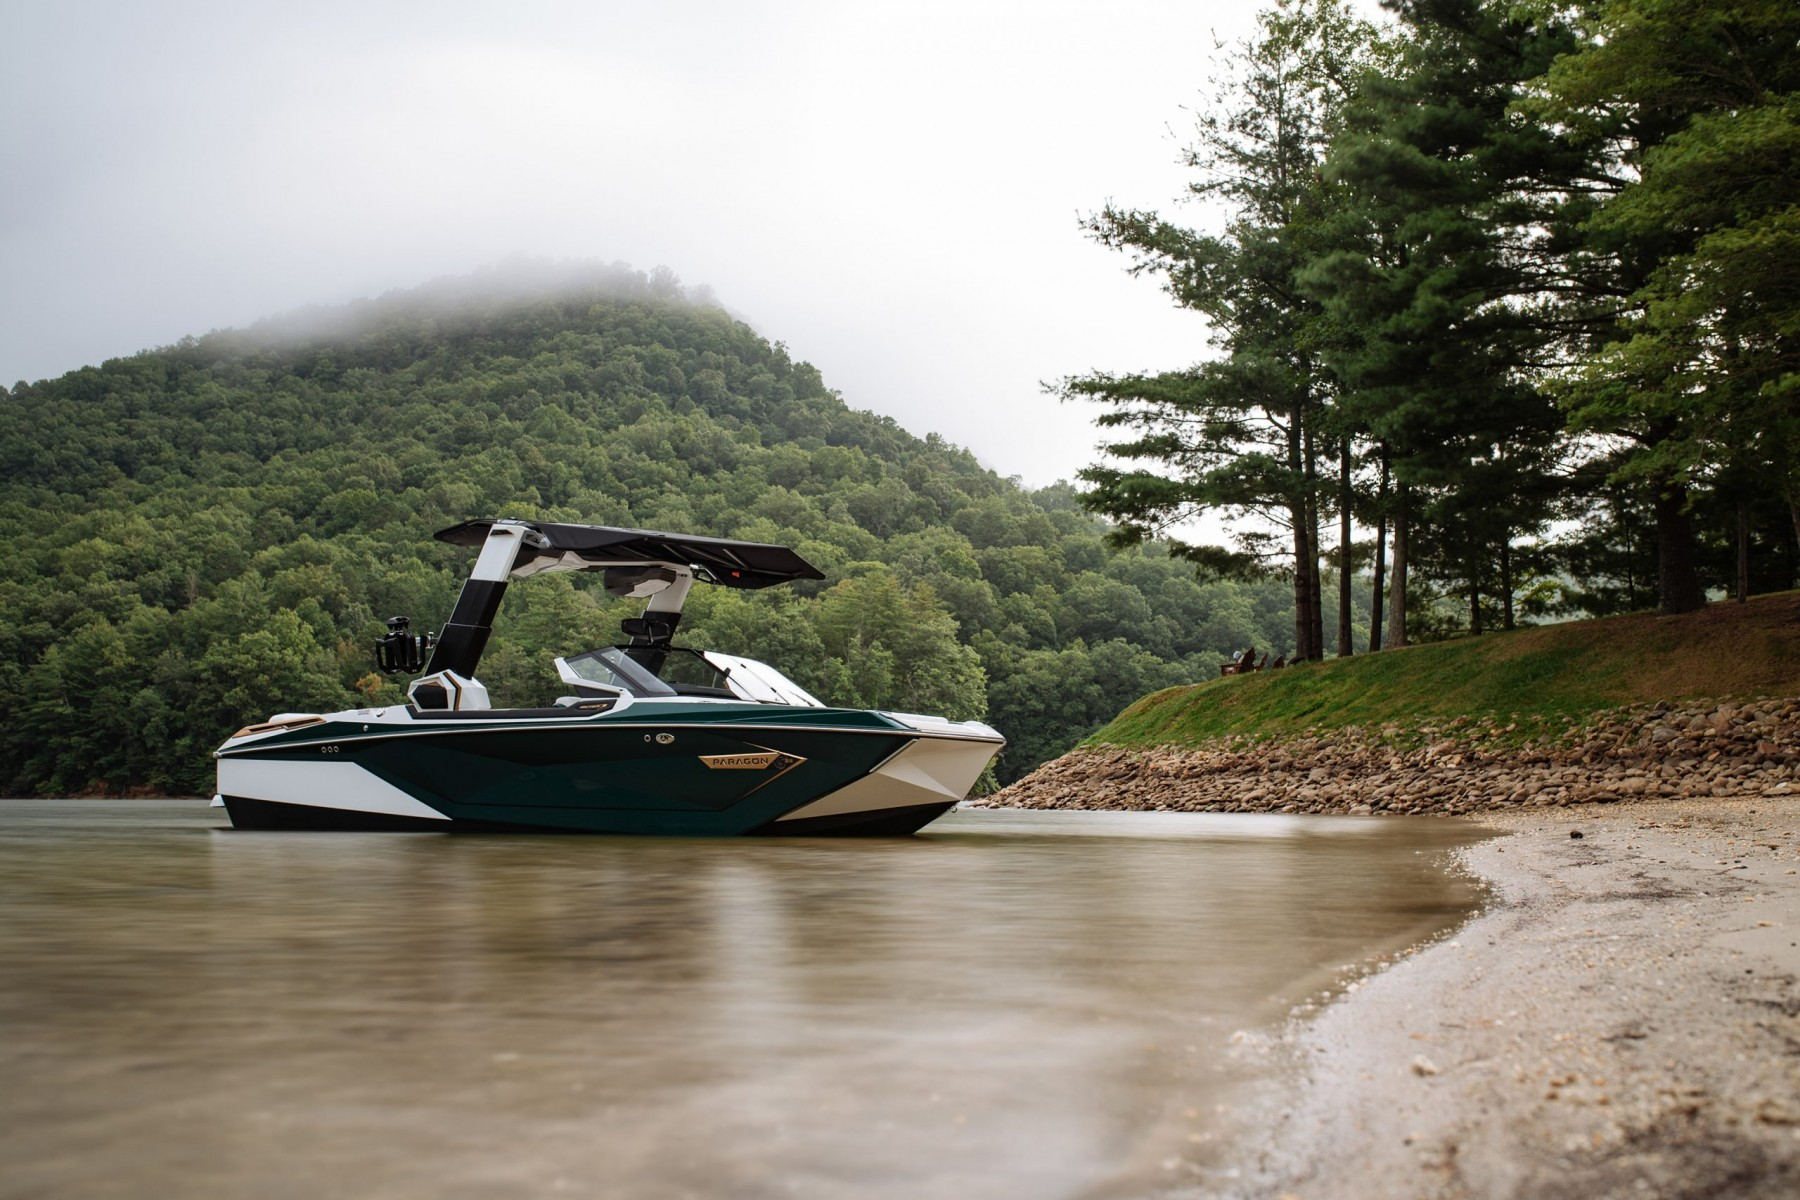 Scenic View on the 2021 Nautique G23 Paragon Wake Boat